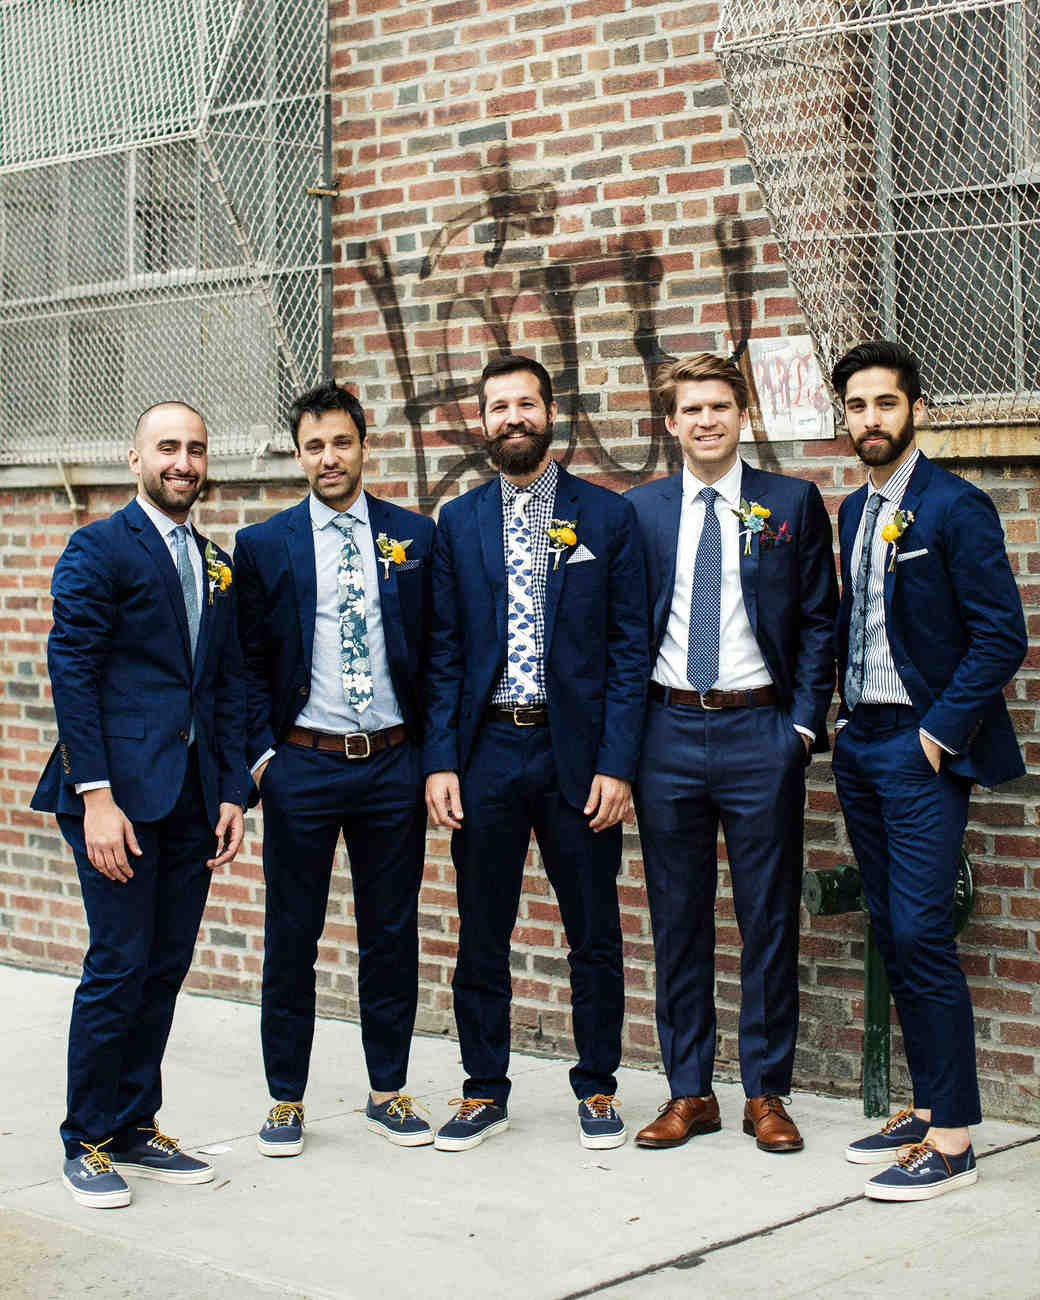 alissa mark wedding groomsmen